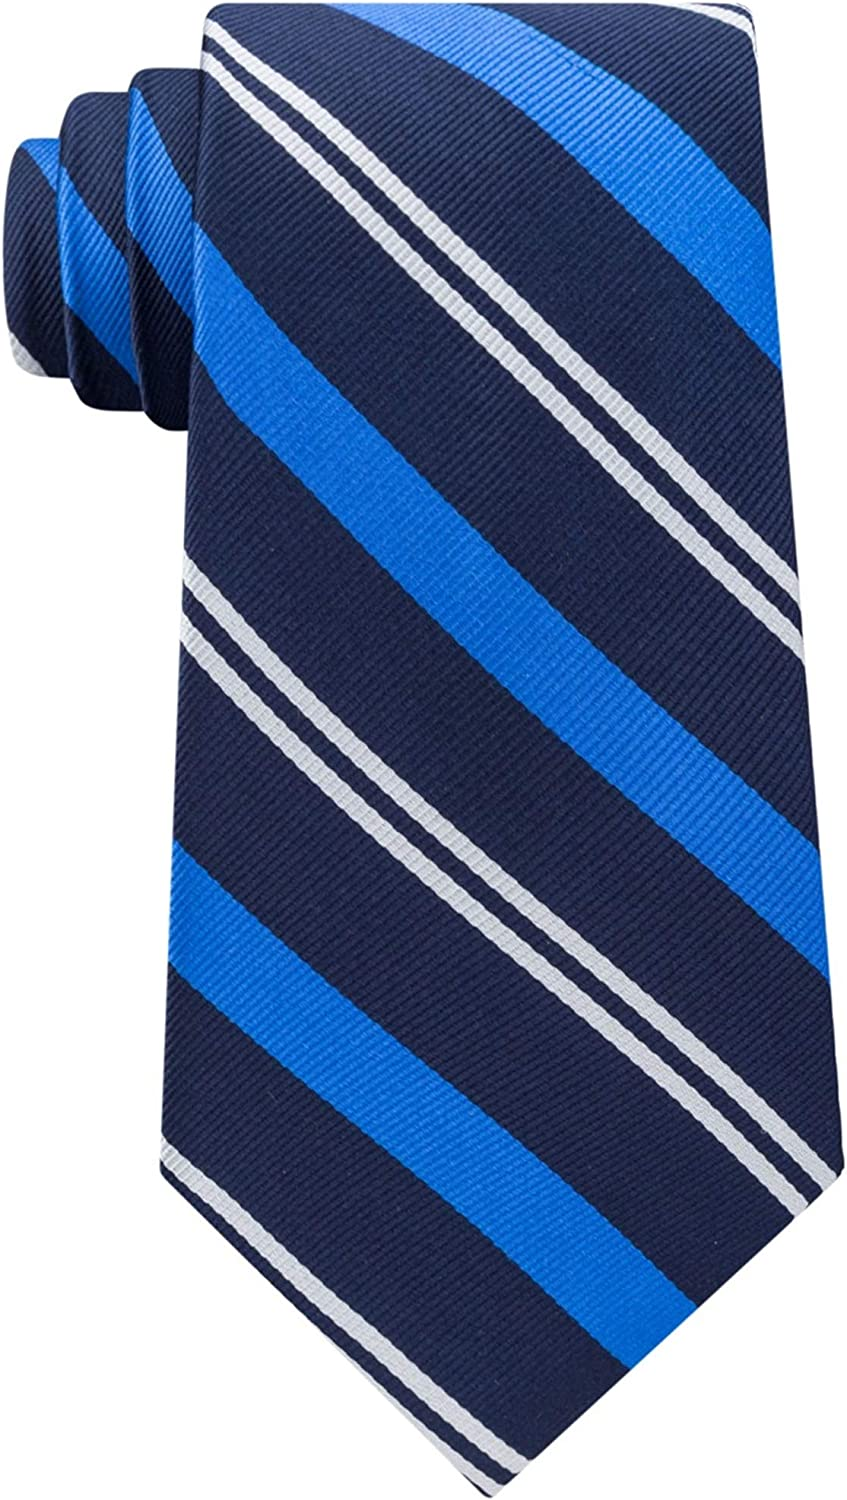 Tommy Free shipping on posting reviews Hilfiger Mens Necktie Self-Tied Super beauty product restock quality top! Striped